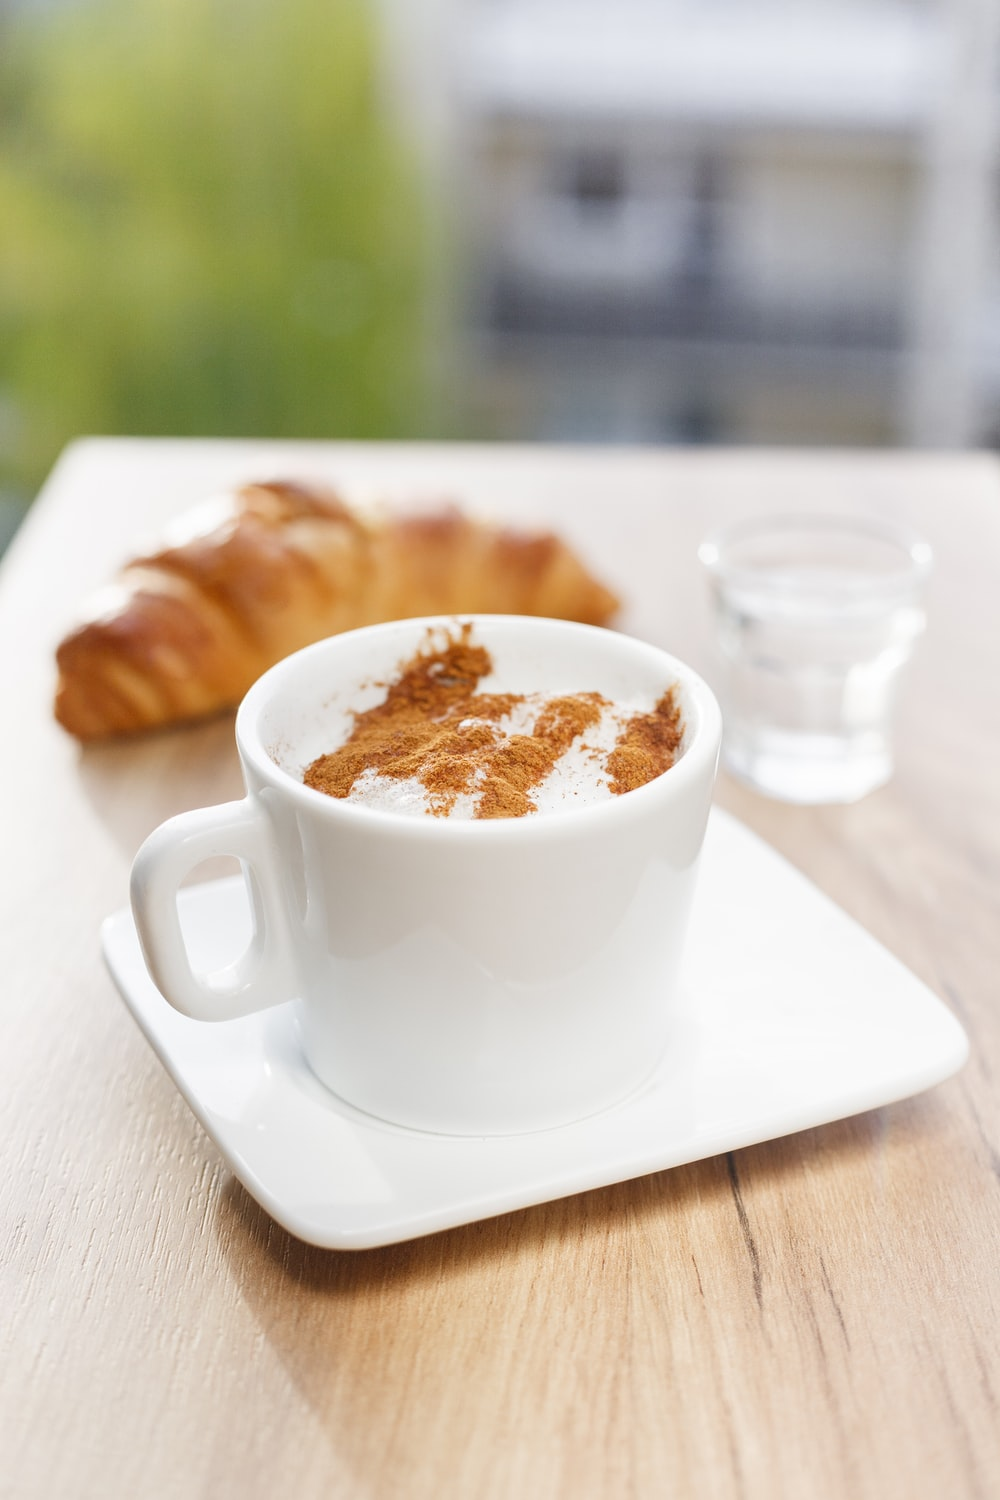 flat lay photography of white mug on white saucer plate and croshan bread